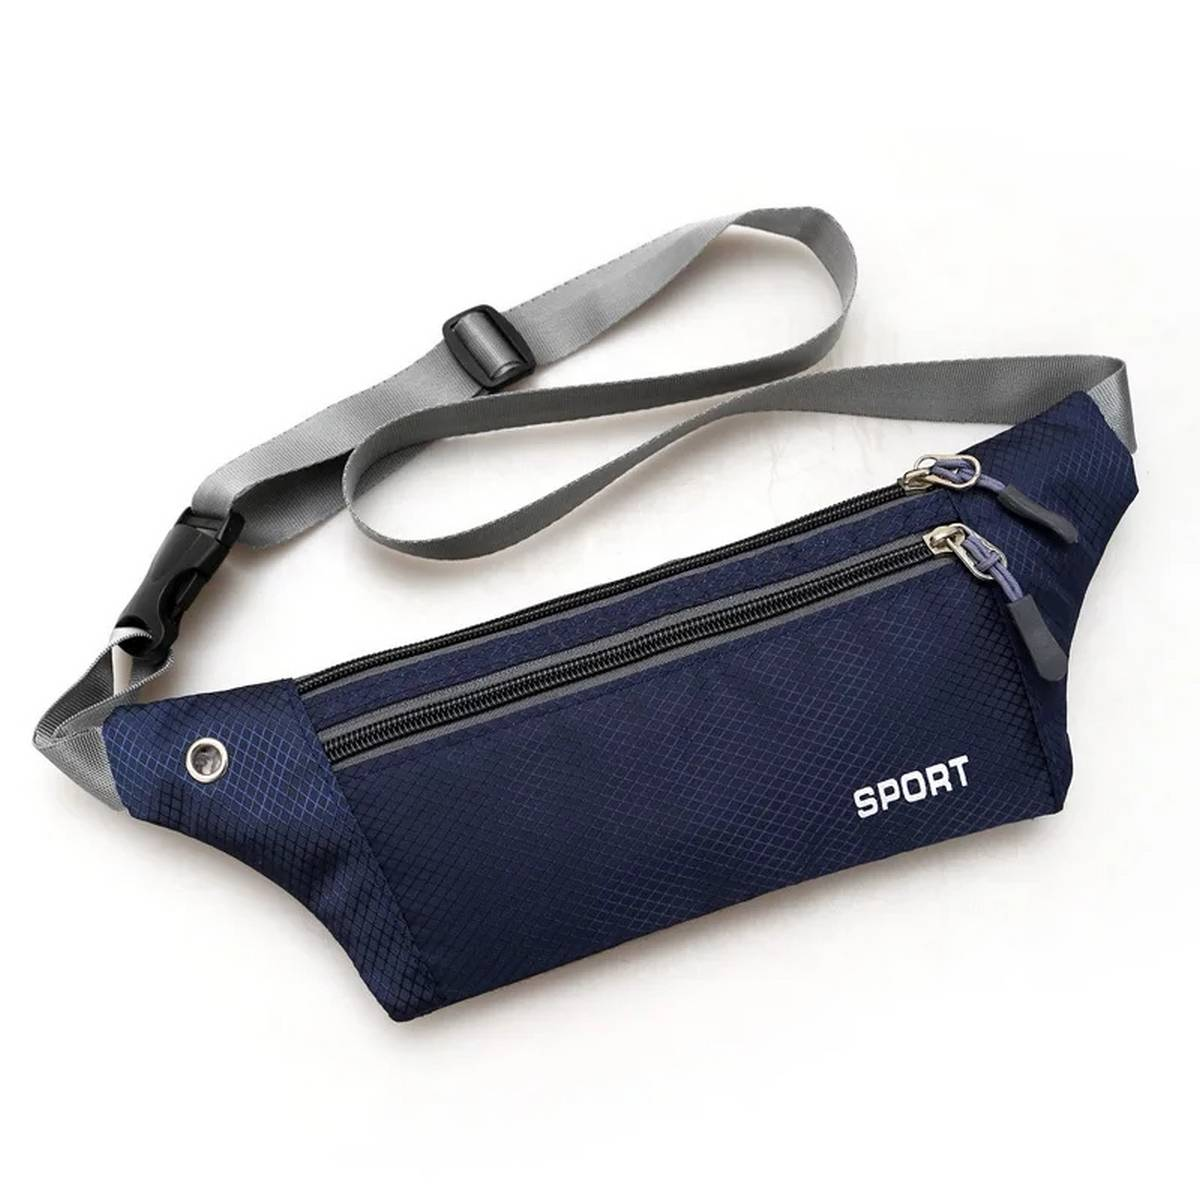 CASUAL  Oxford Cloth Chest Bag, Sports ,Outdoor Leisure Multi-function Bag